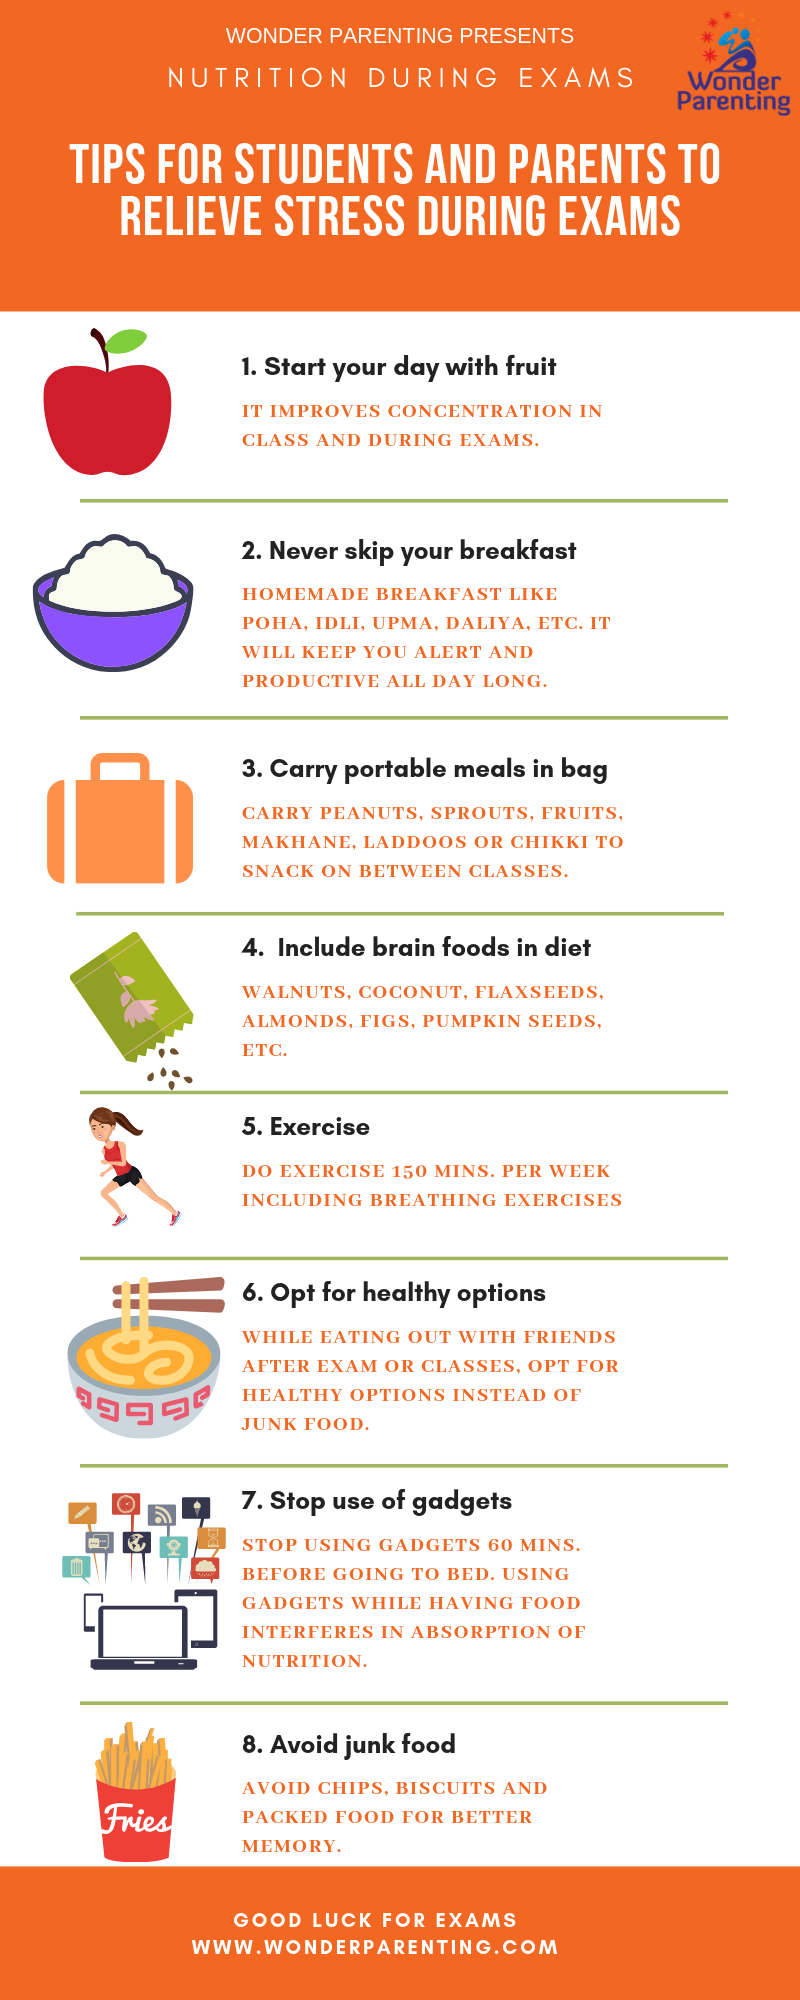 NUTRITION DURING EXAMS-wonderparenting